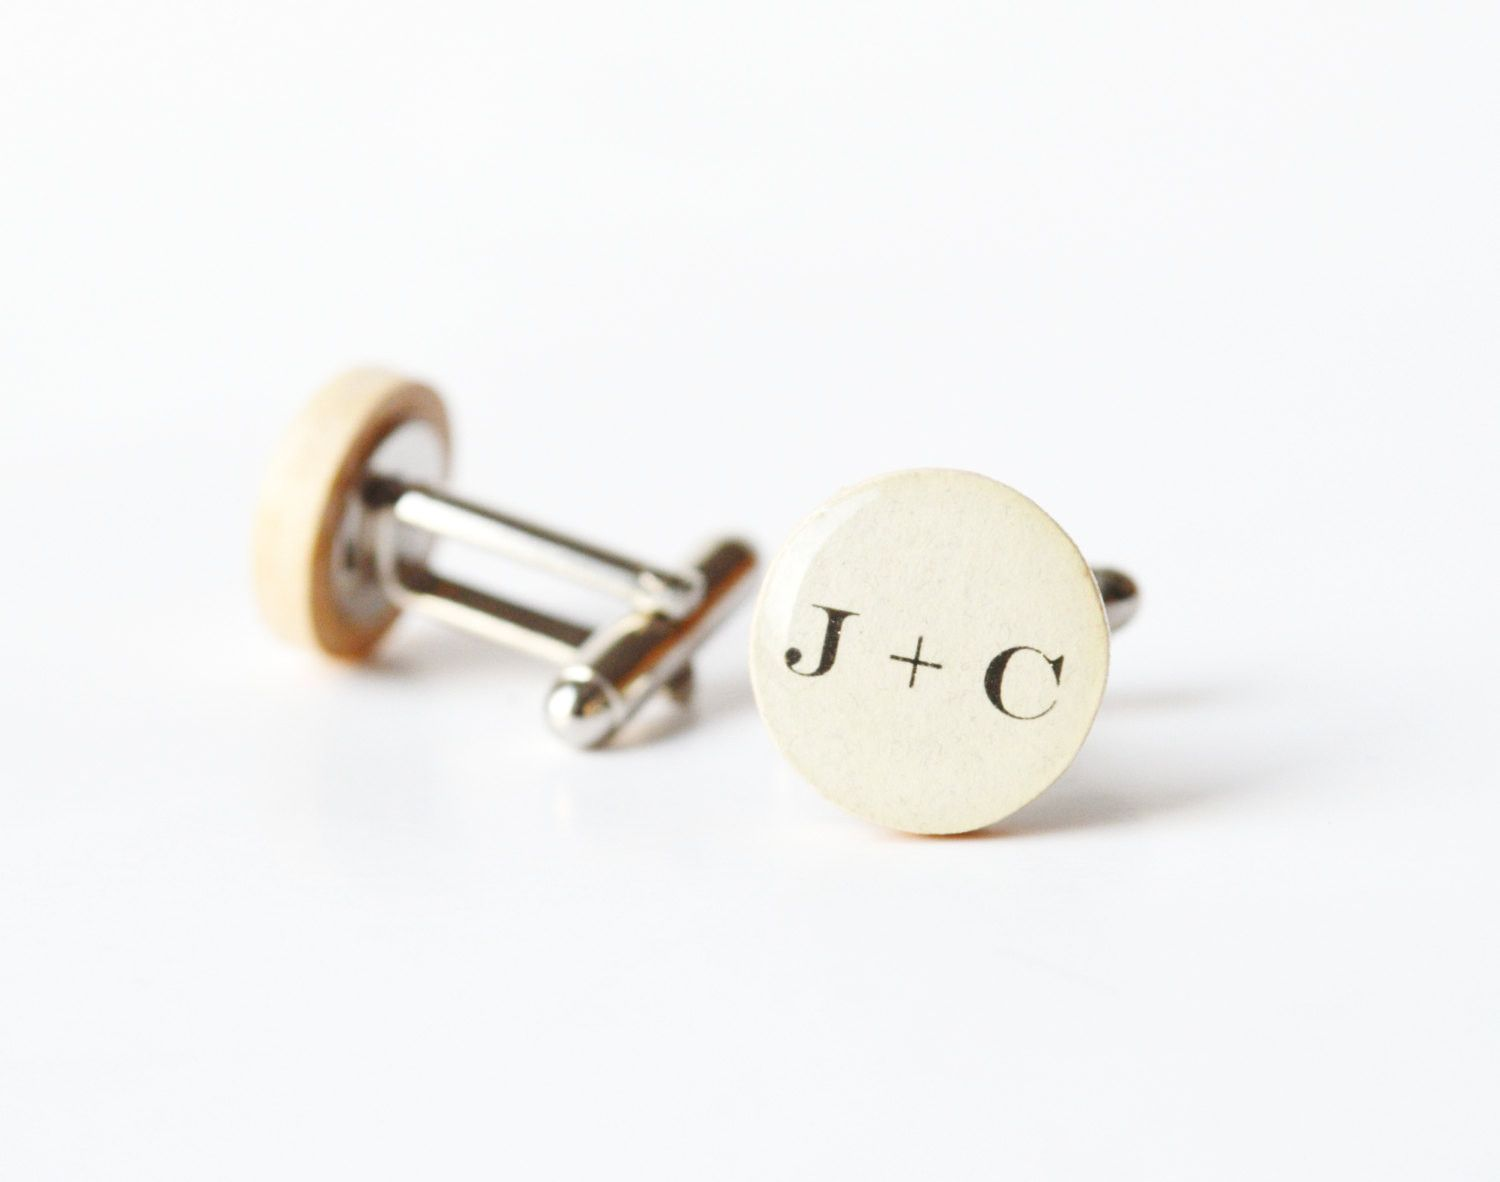 Fifth Wedding Anniversary Gifts For Men: Personalized Cufflinks Wood Cufflinks Personalized Men 5th